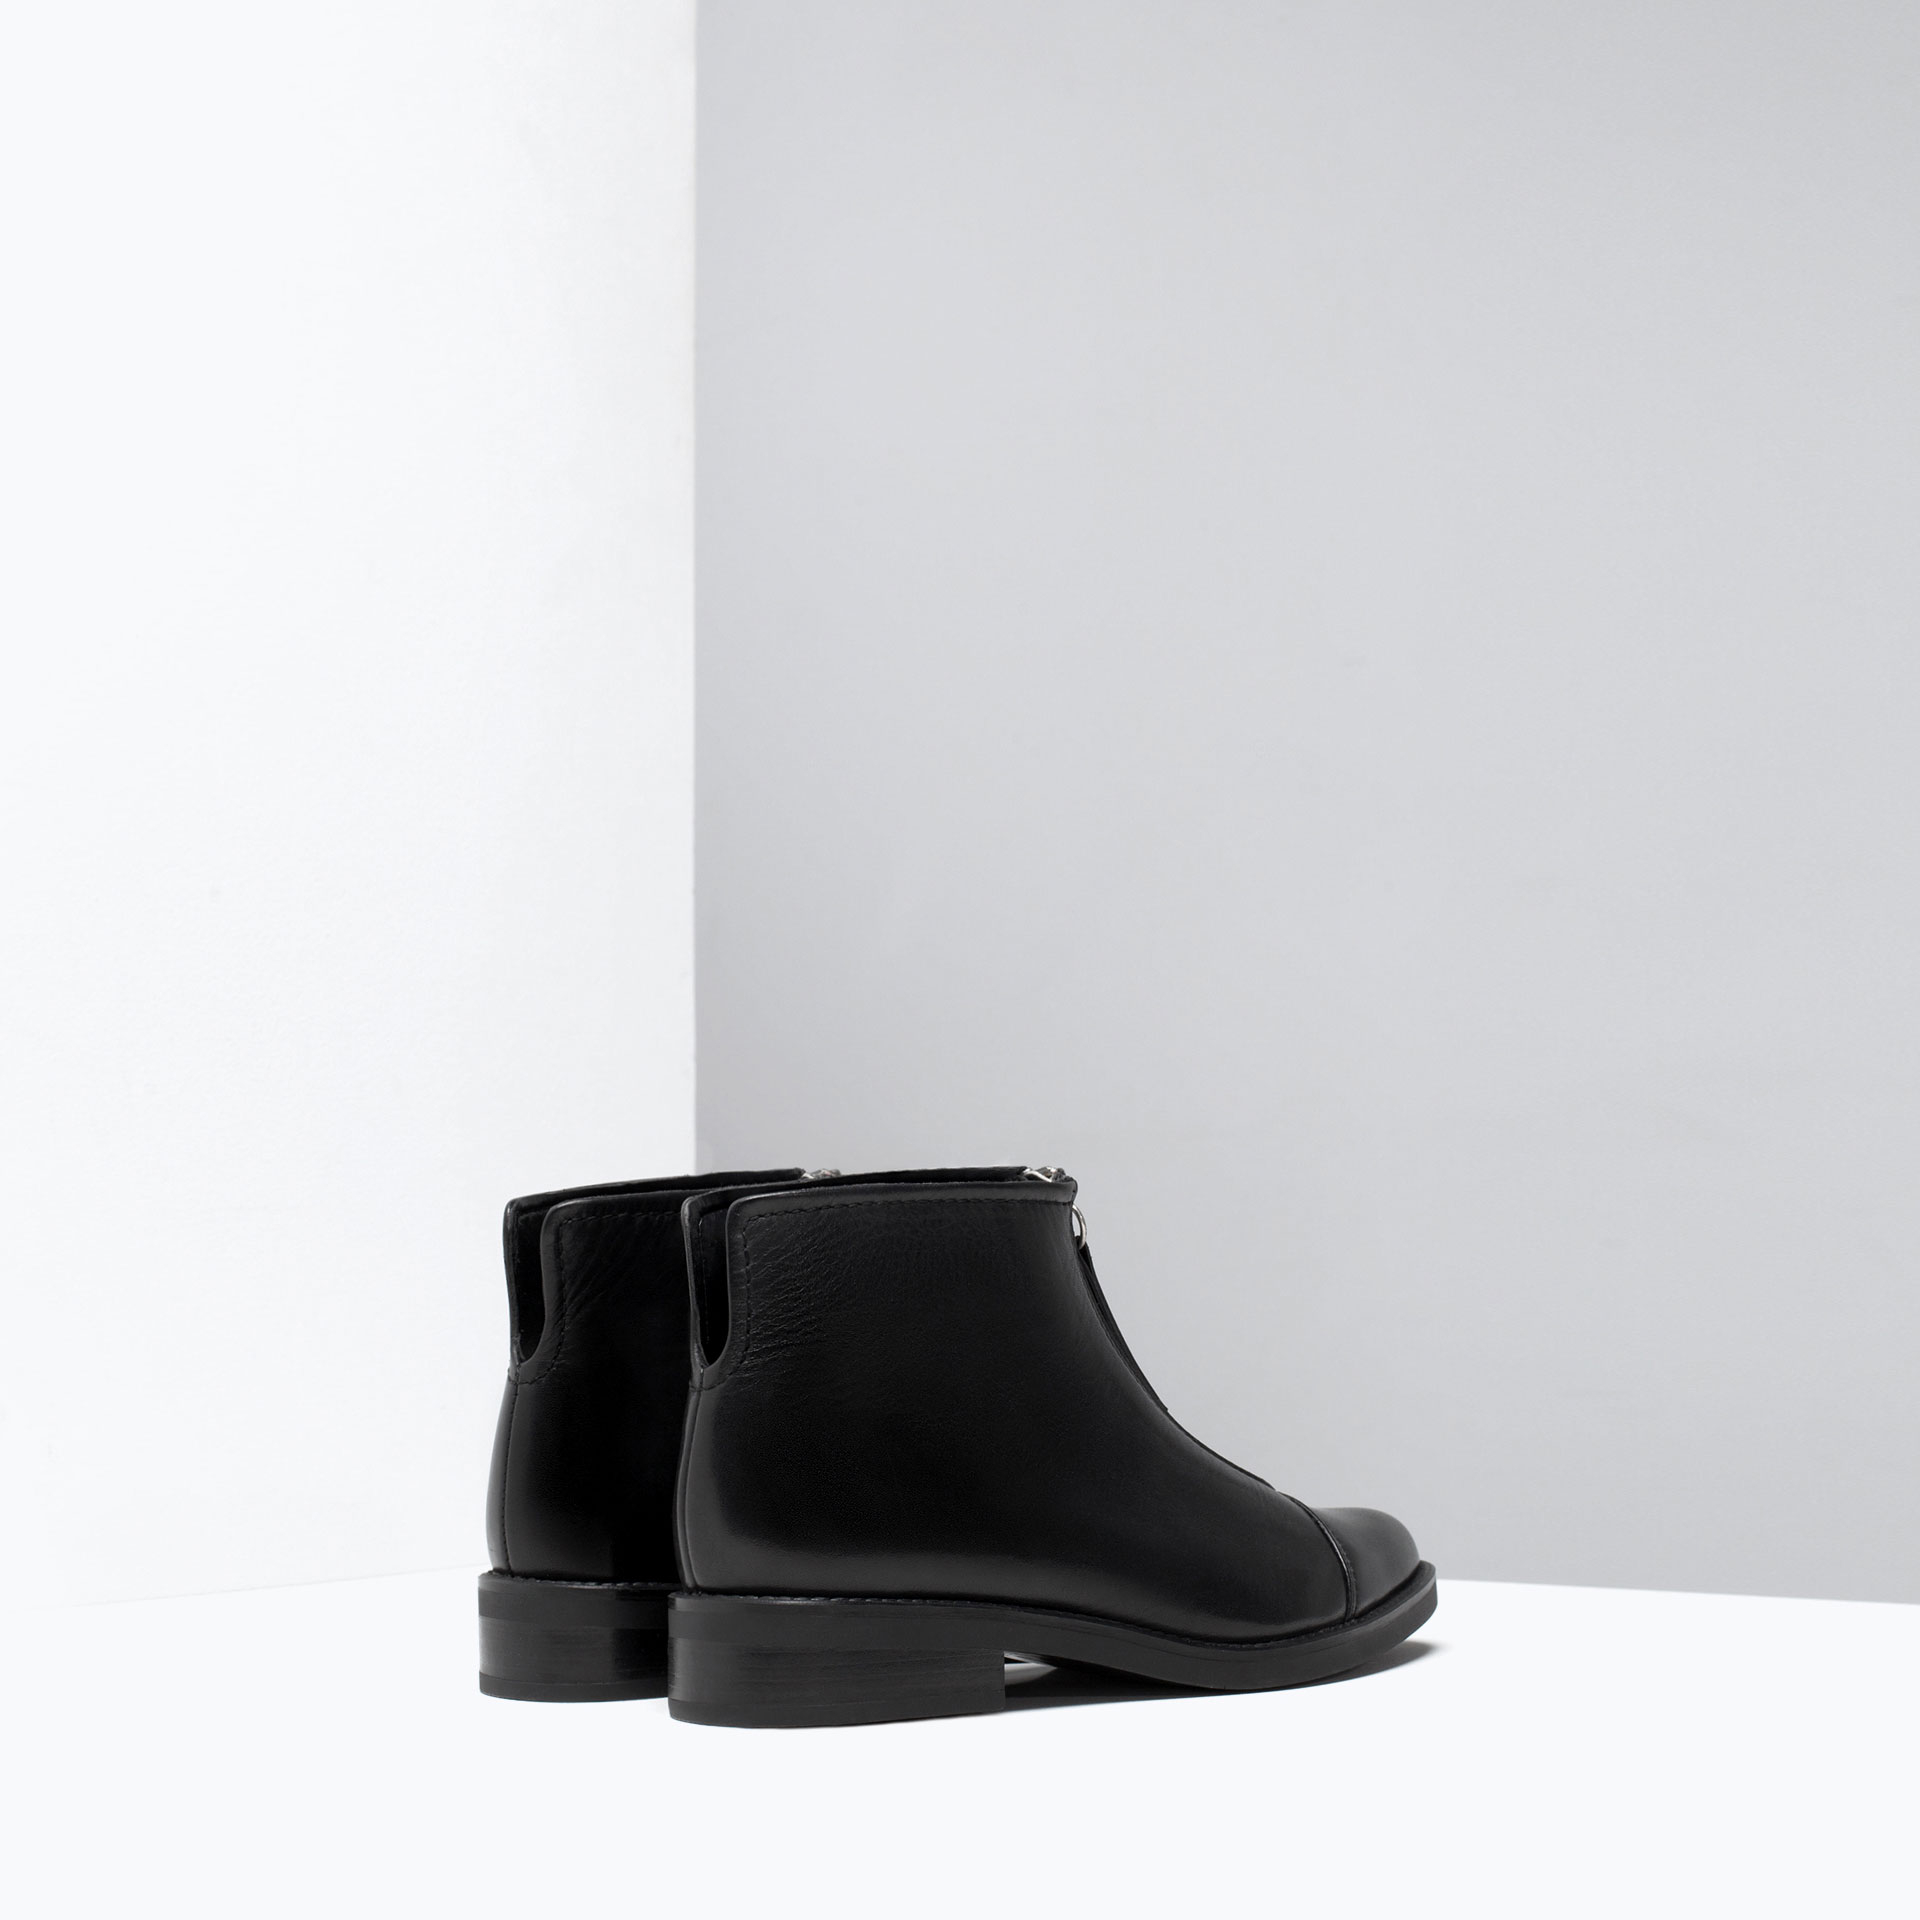 zara zipped leather ankle boots zipped leather ankle boots